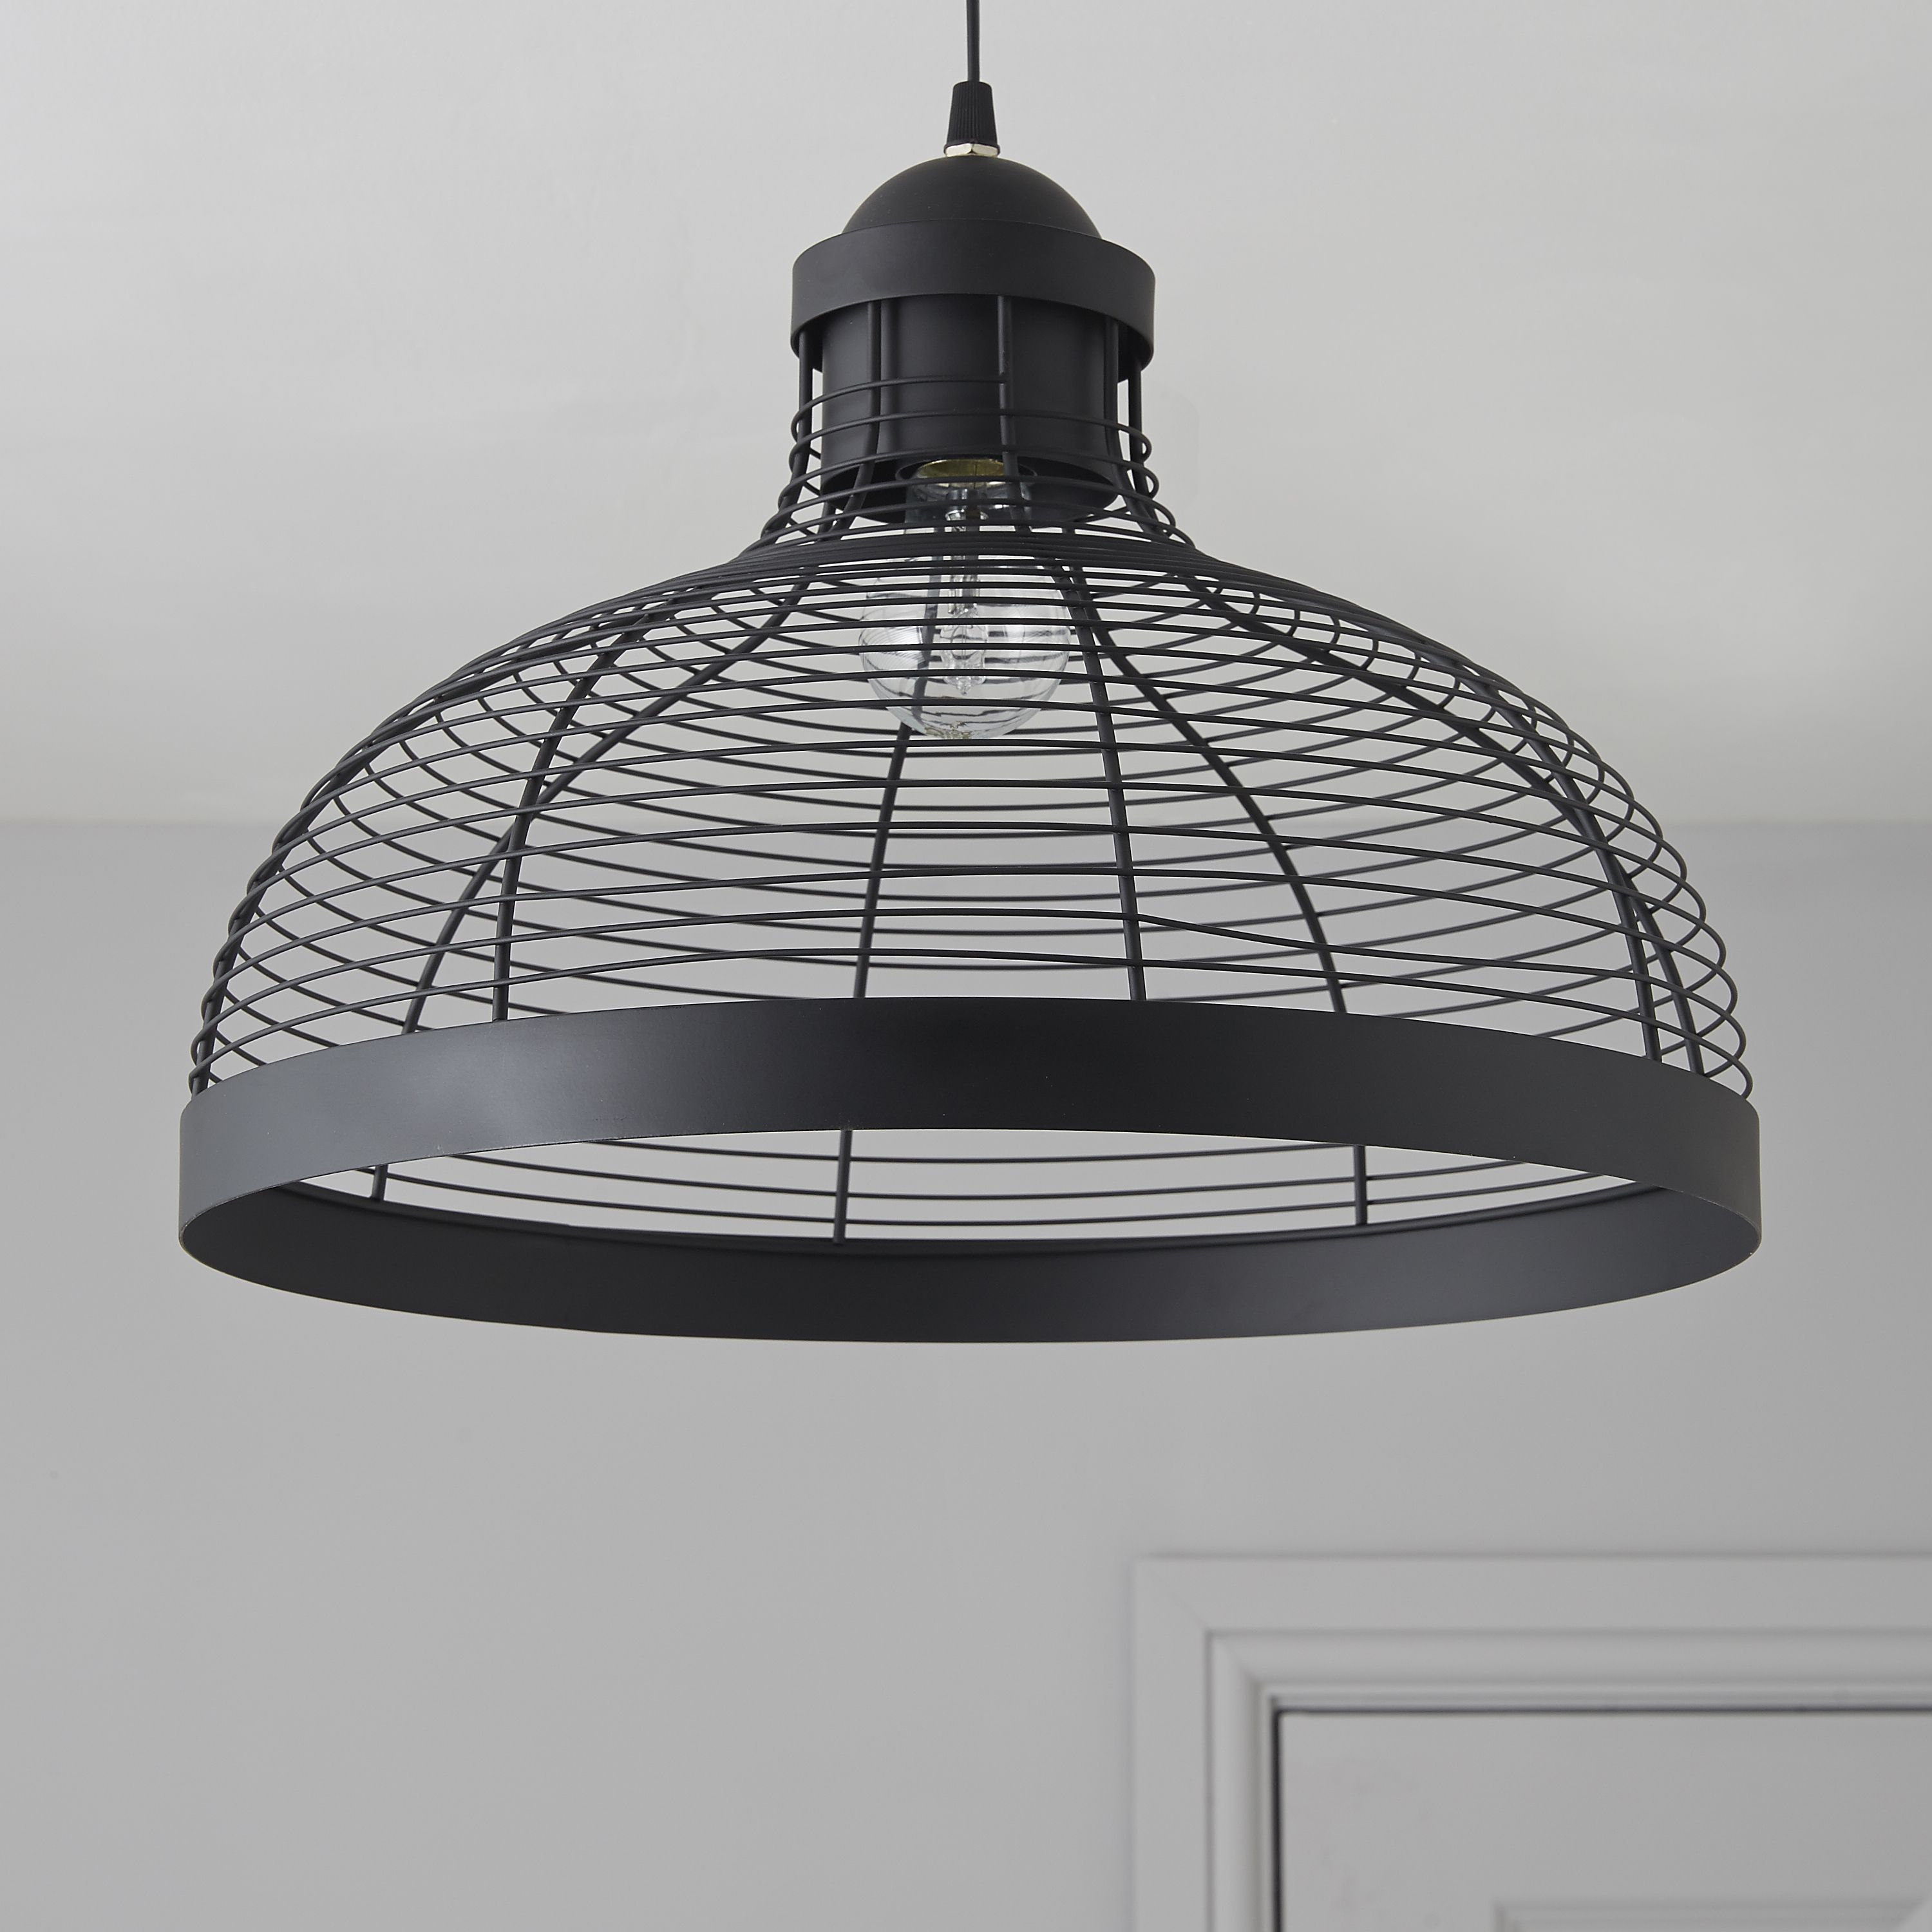 Ceiling Cable Lighting : Baici wire black pendant ceiling light departments diy